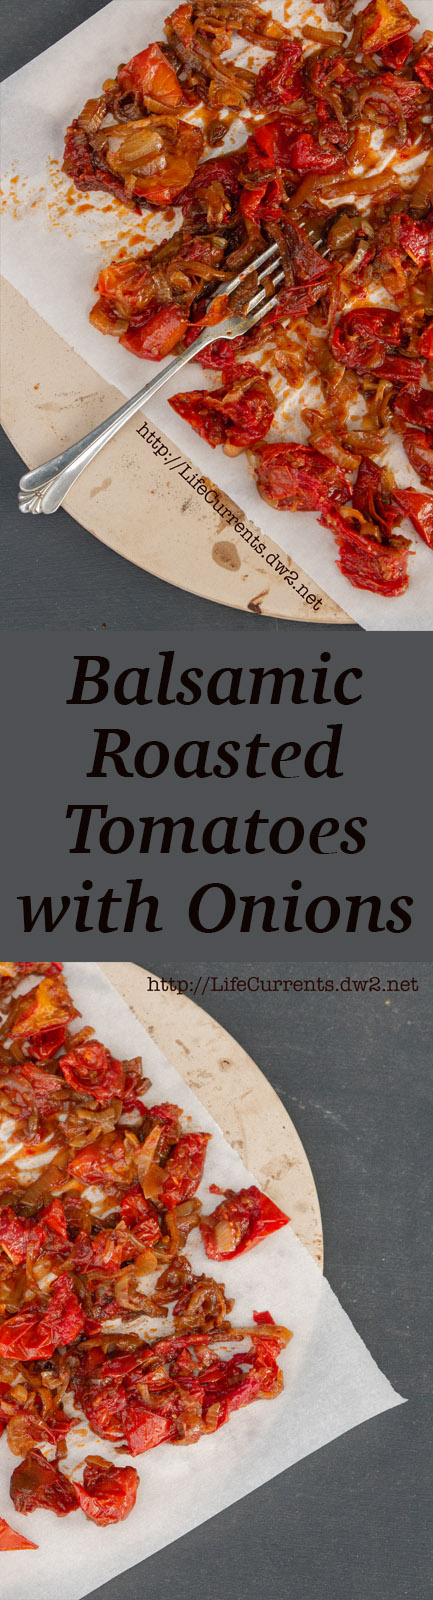 Balsamic Roasted Tomatoes with Onions: use them anywhere you'd use sun-dried tomatoes, but these babies have been kicked up a notch! And, they're easy to make.